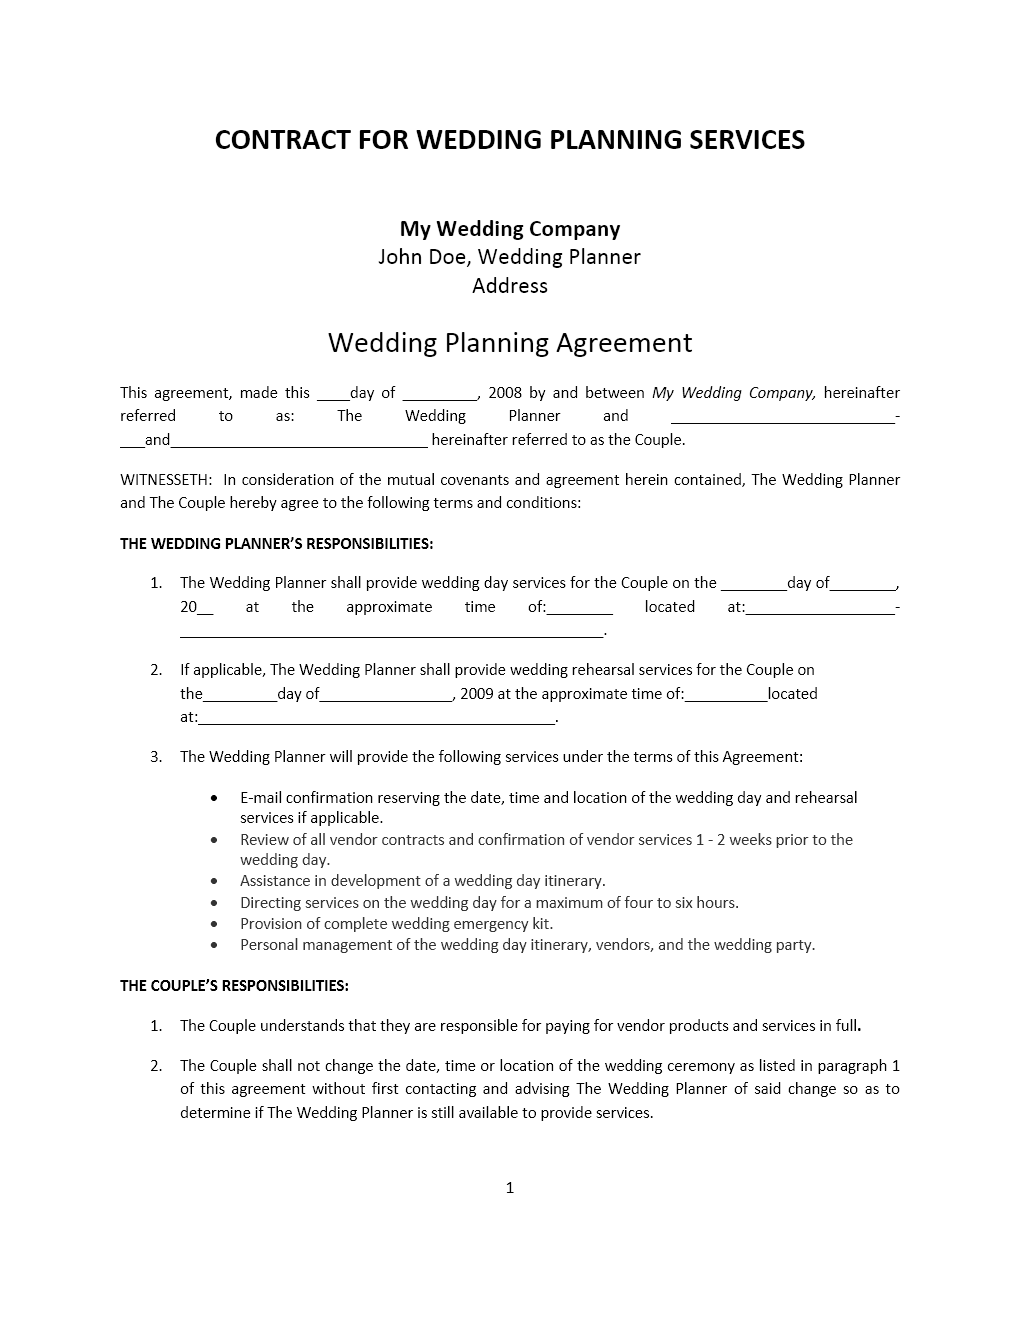 Wedding Planner Contract Template  Blank Construction Contract